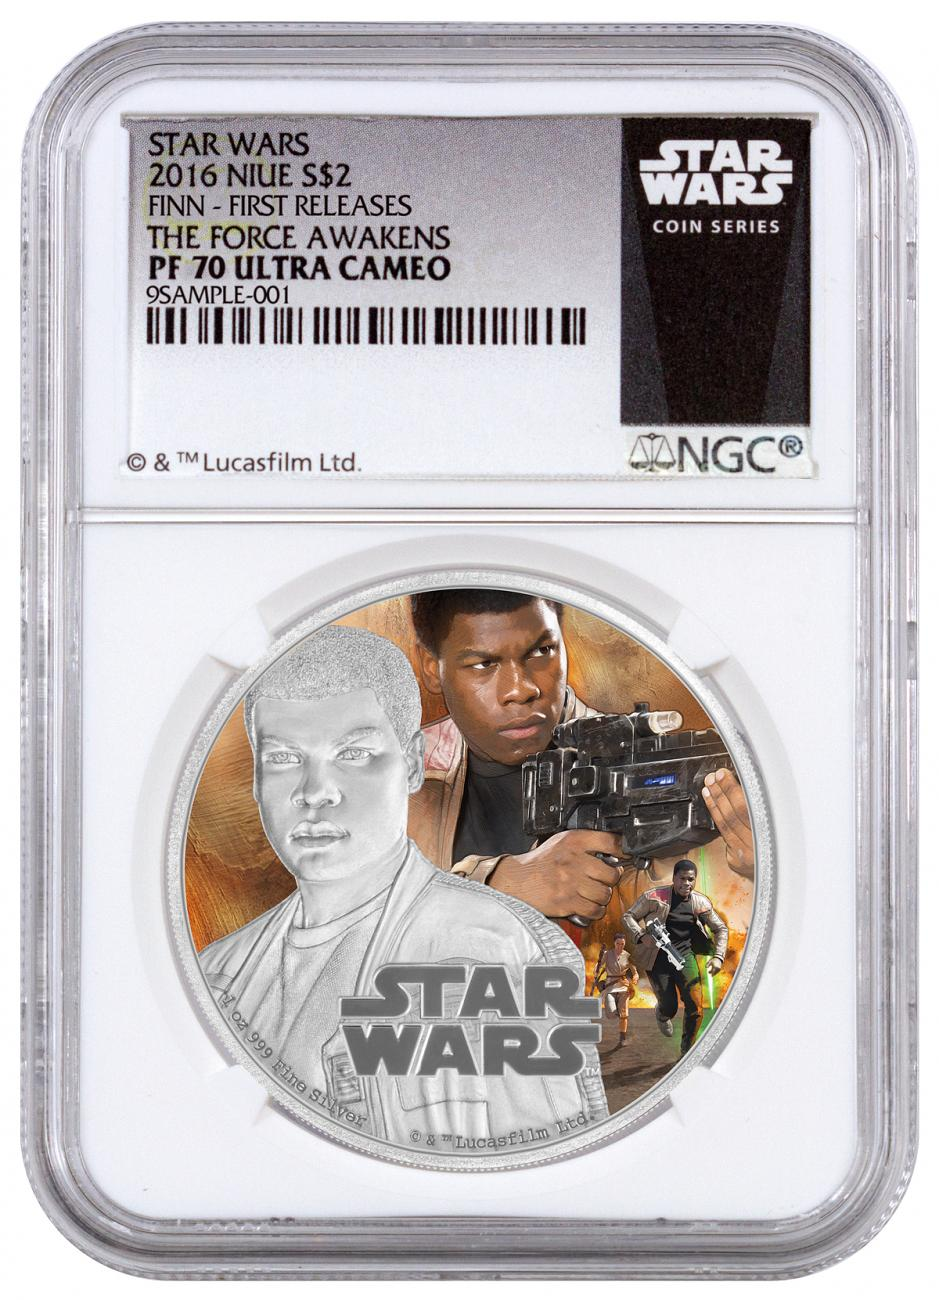 2016 Niue $2 1 oz. Colorized Proof Silver Star Wars: The Force Awakens - Finn - NGC PF70 UC First Releases (Exclusive Star Wars Label)